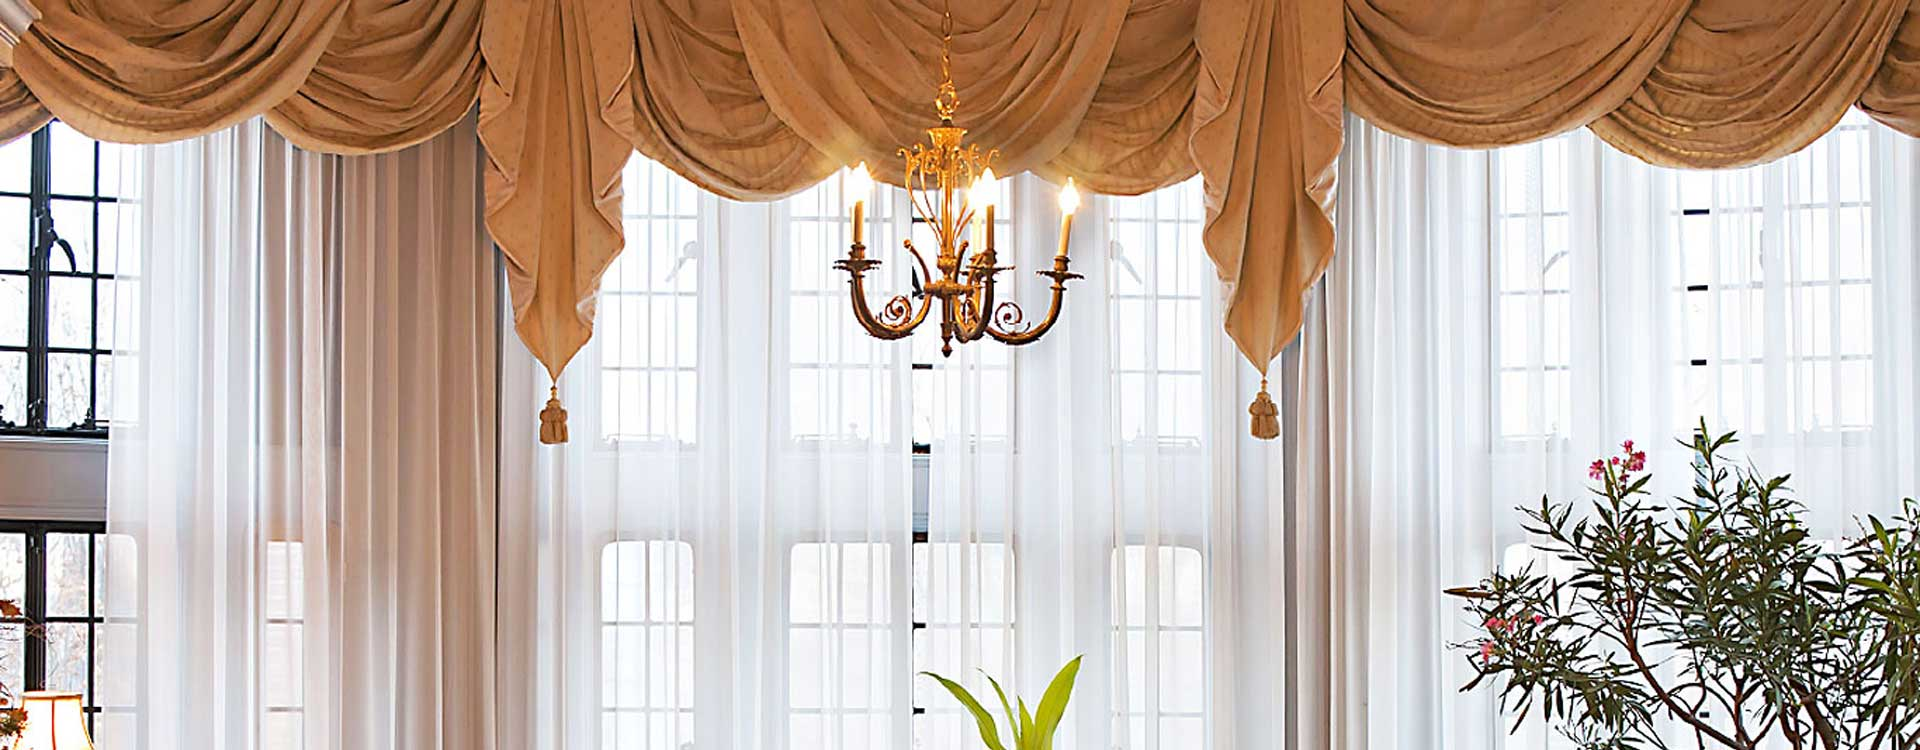 valance with pdx addie grove wayfair reviews curtain drapes window treatments august